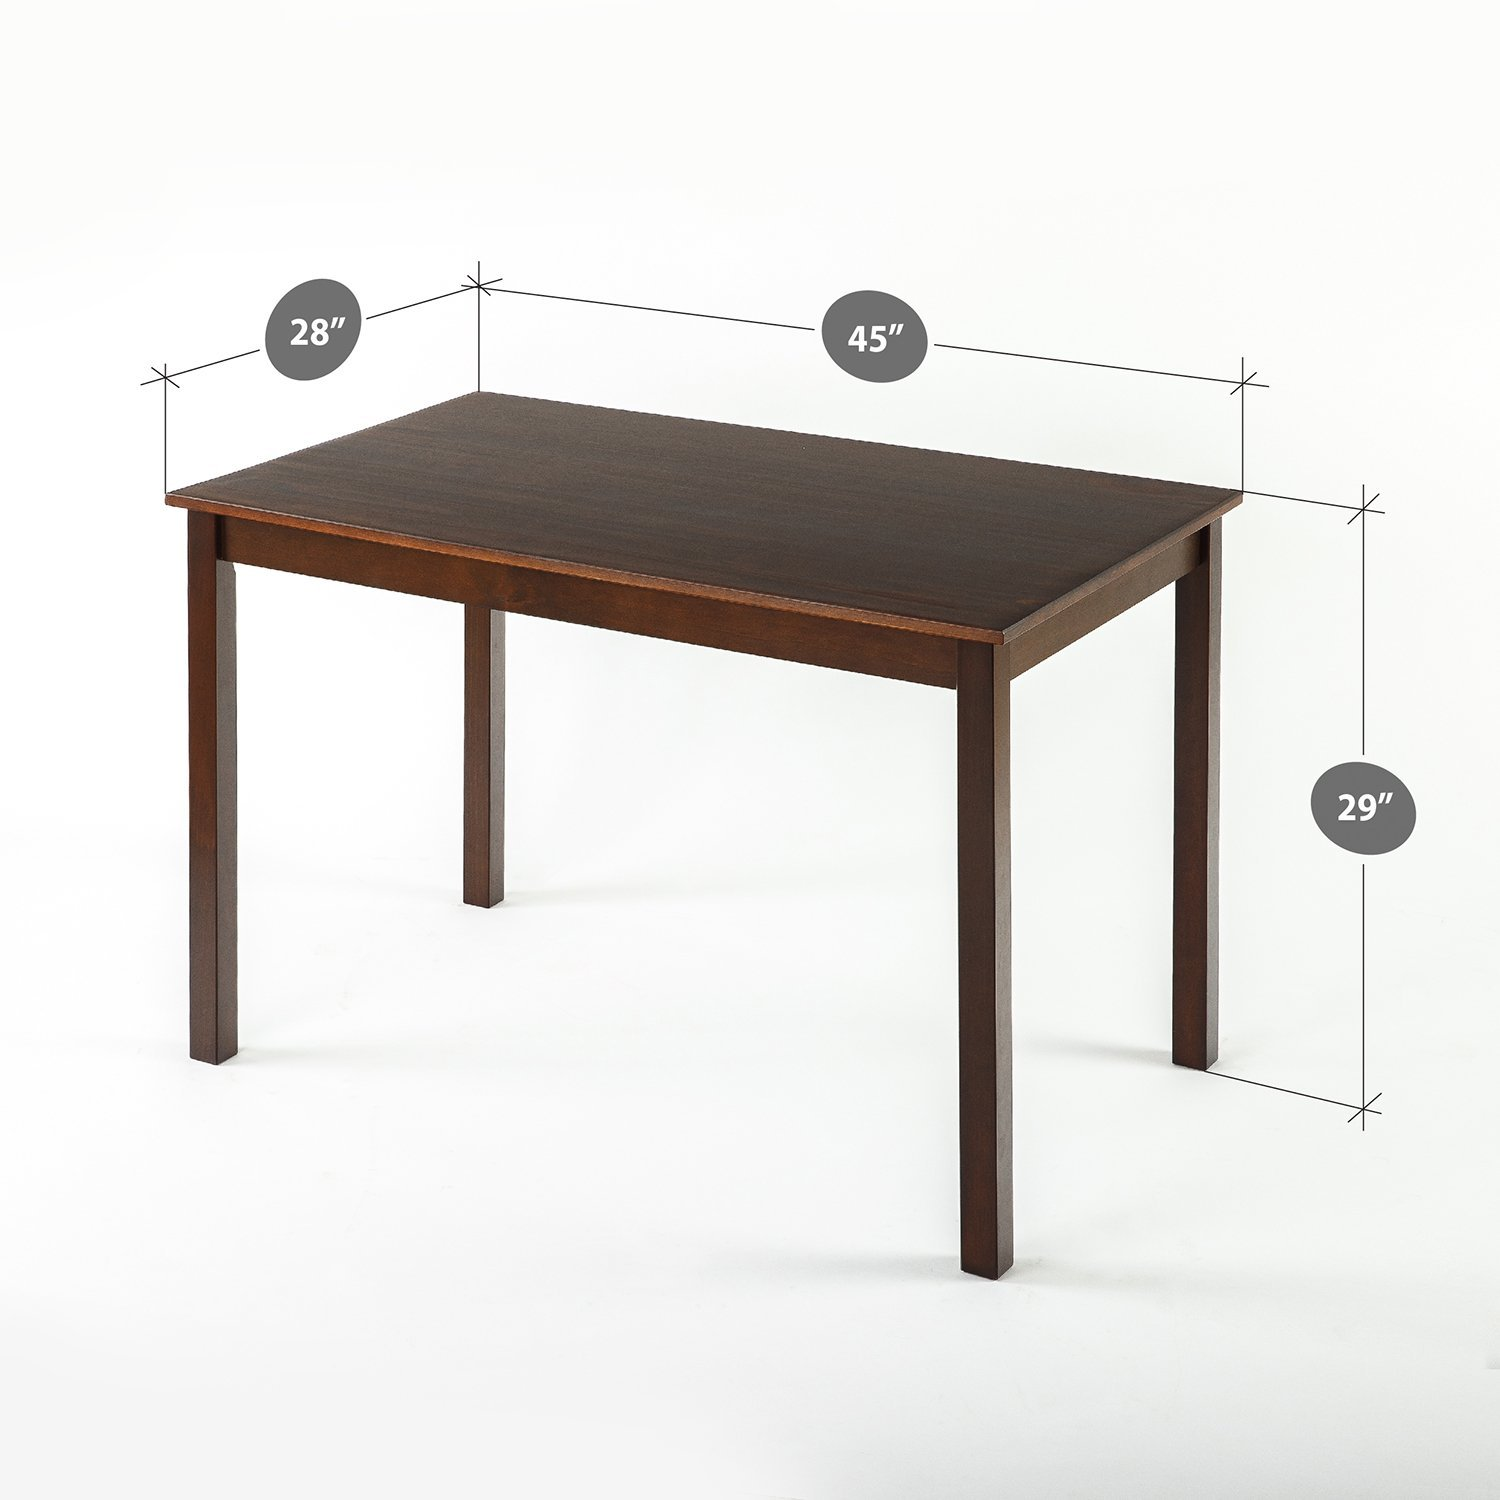 Amazon.com - Zinus Espresso Wood Dining Table/Table Only - Tables